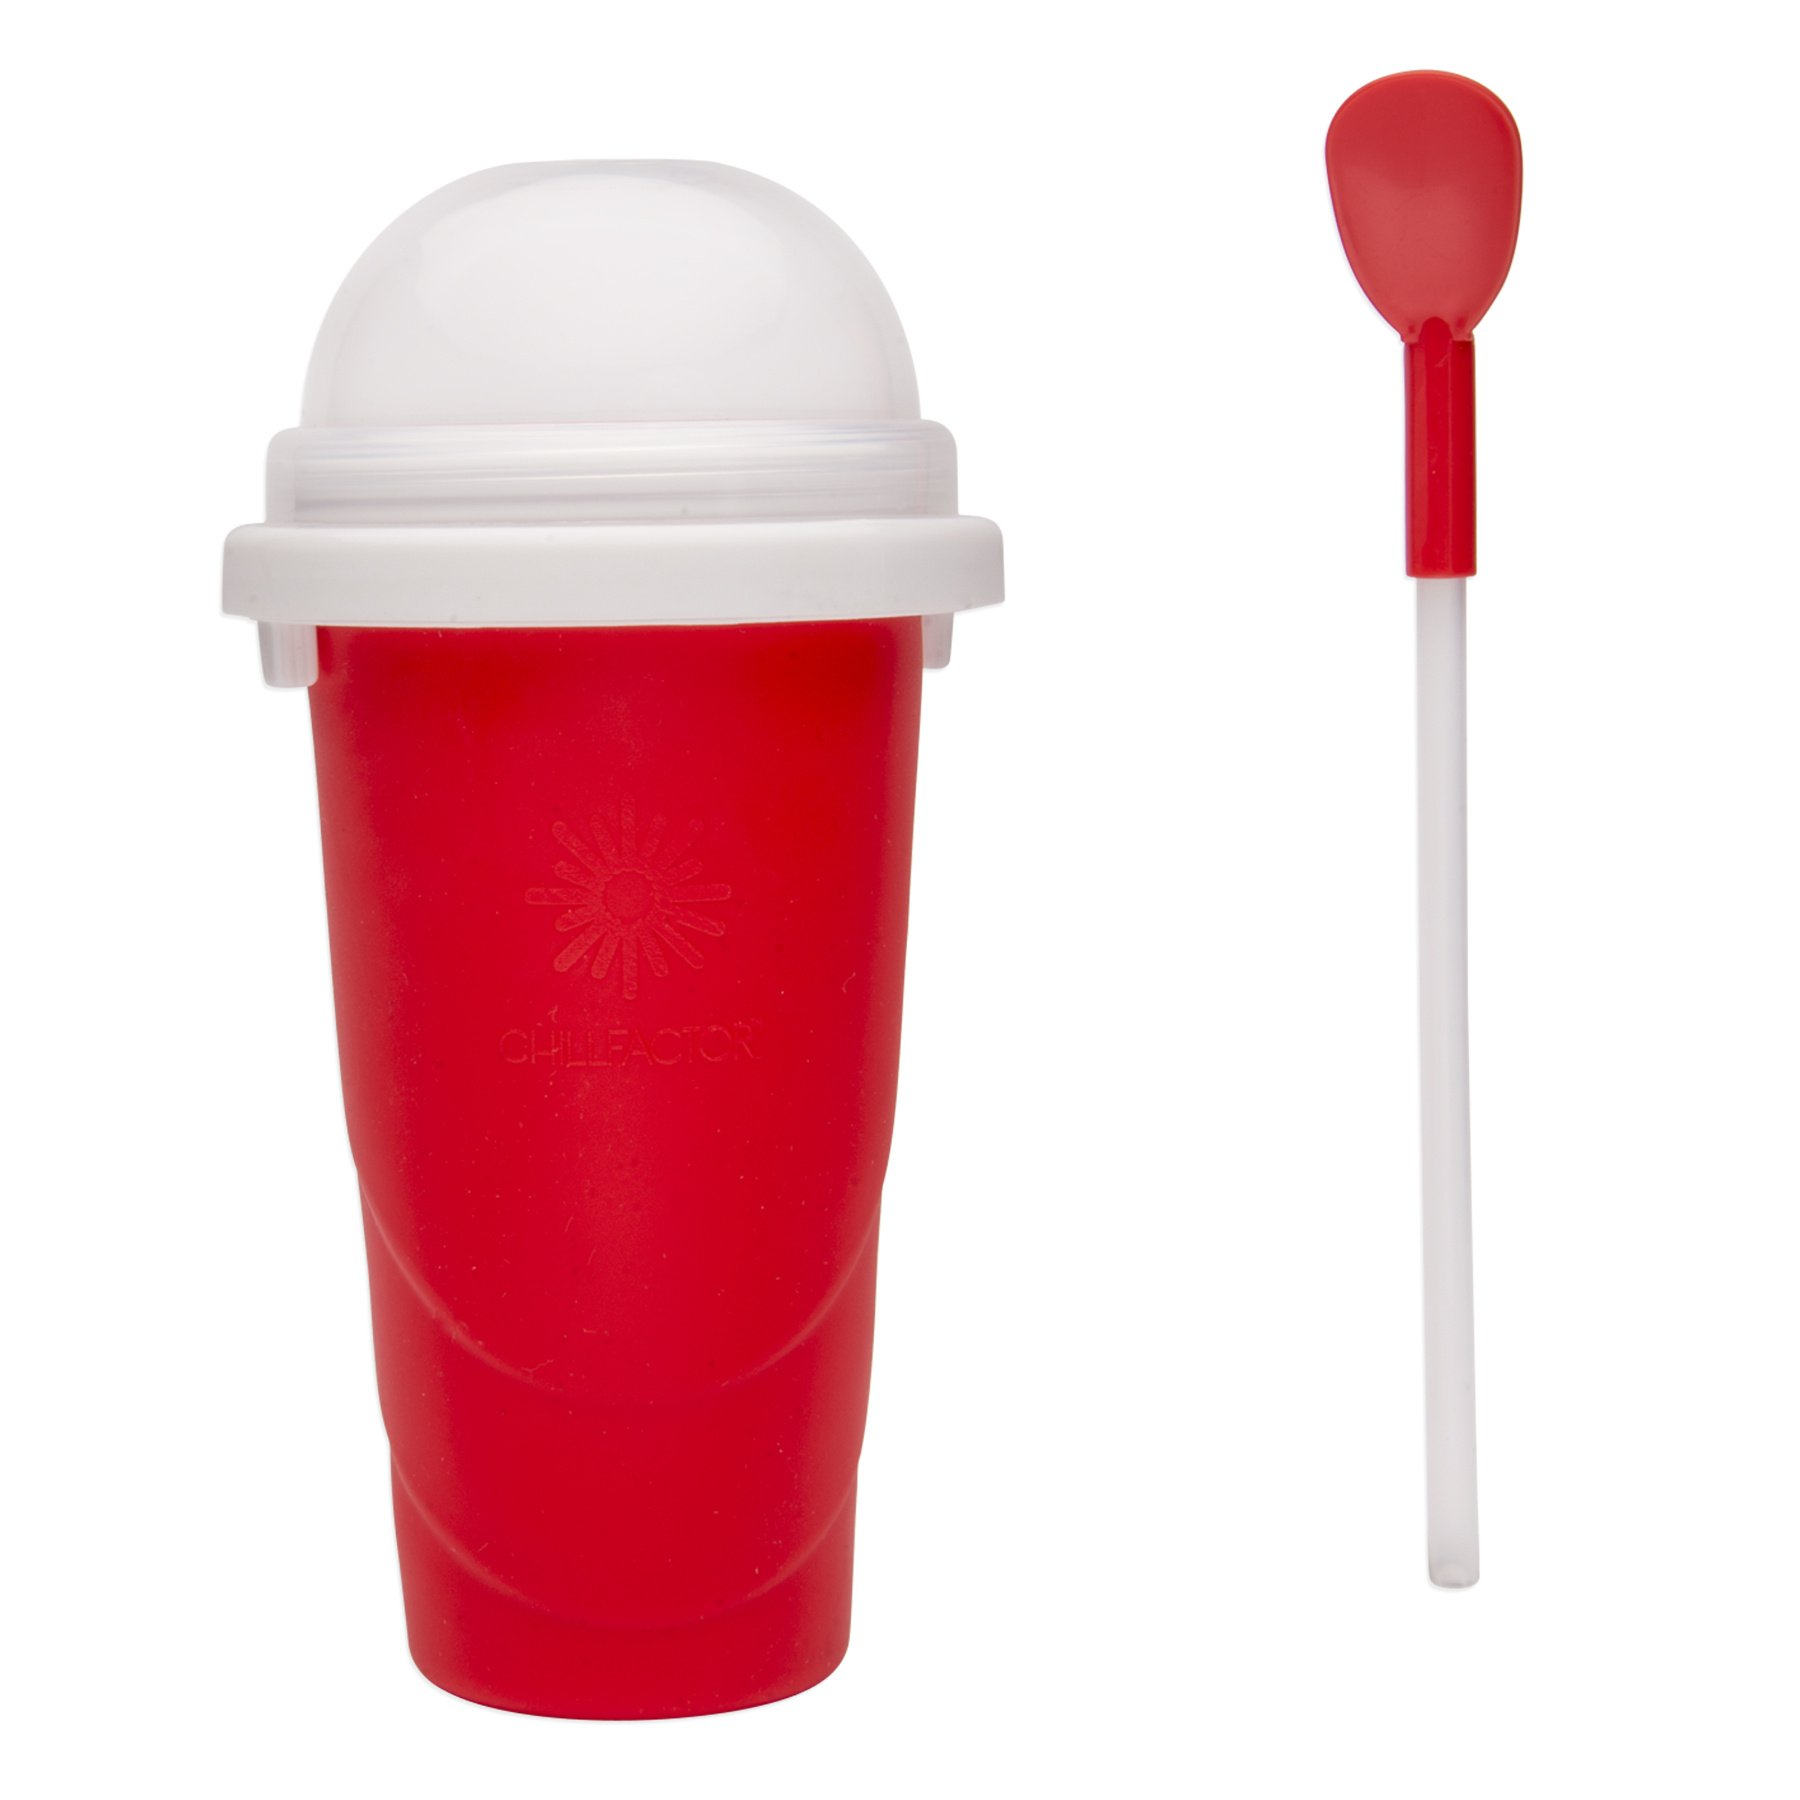 The Chill Factory Chill Factor Slushy Maker, Red by The Chill Factory